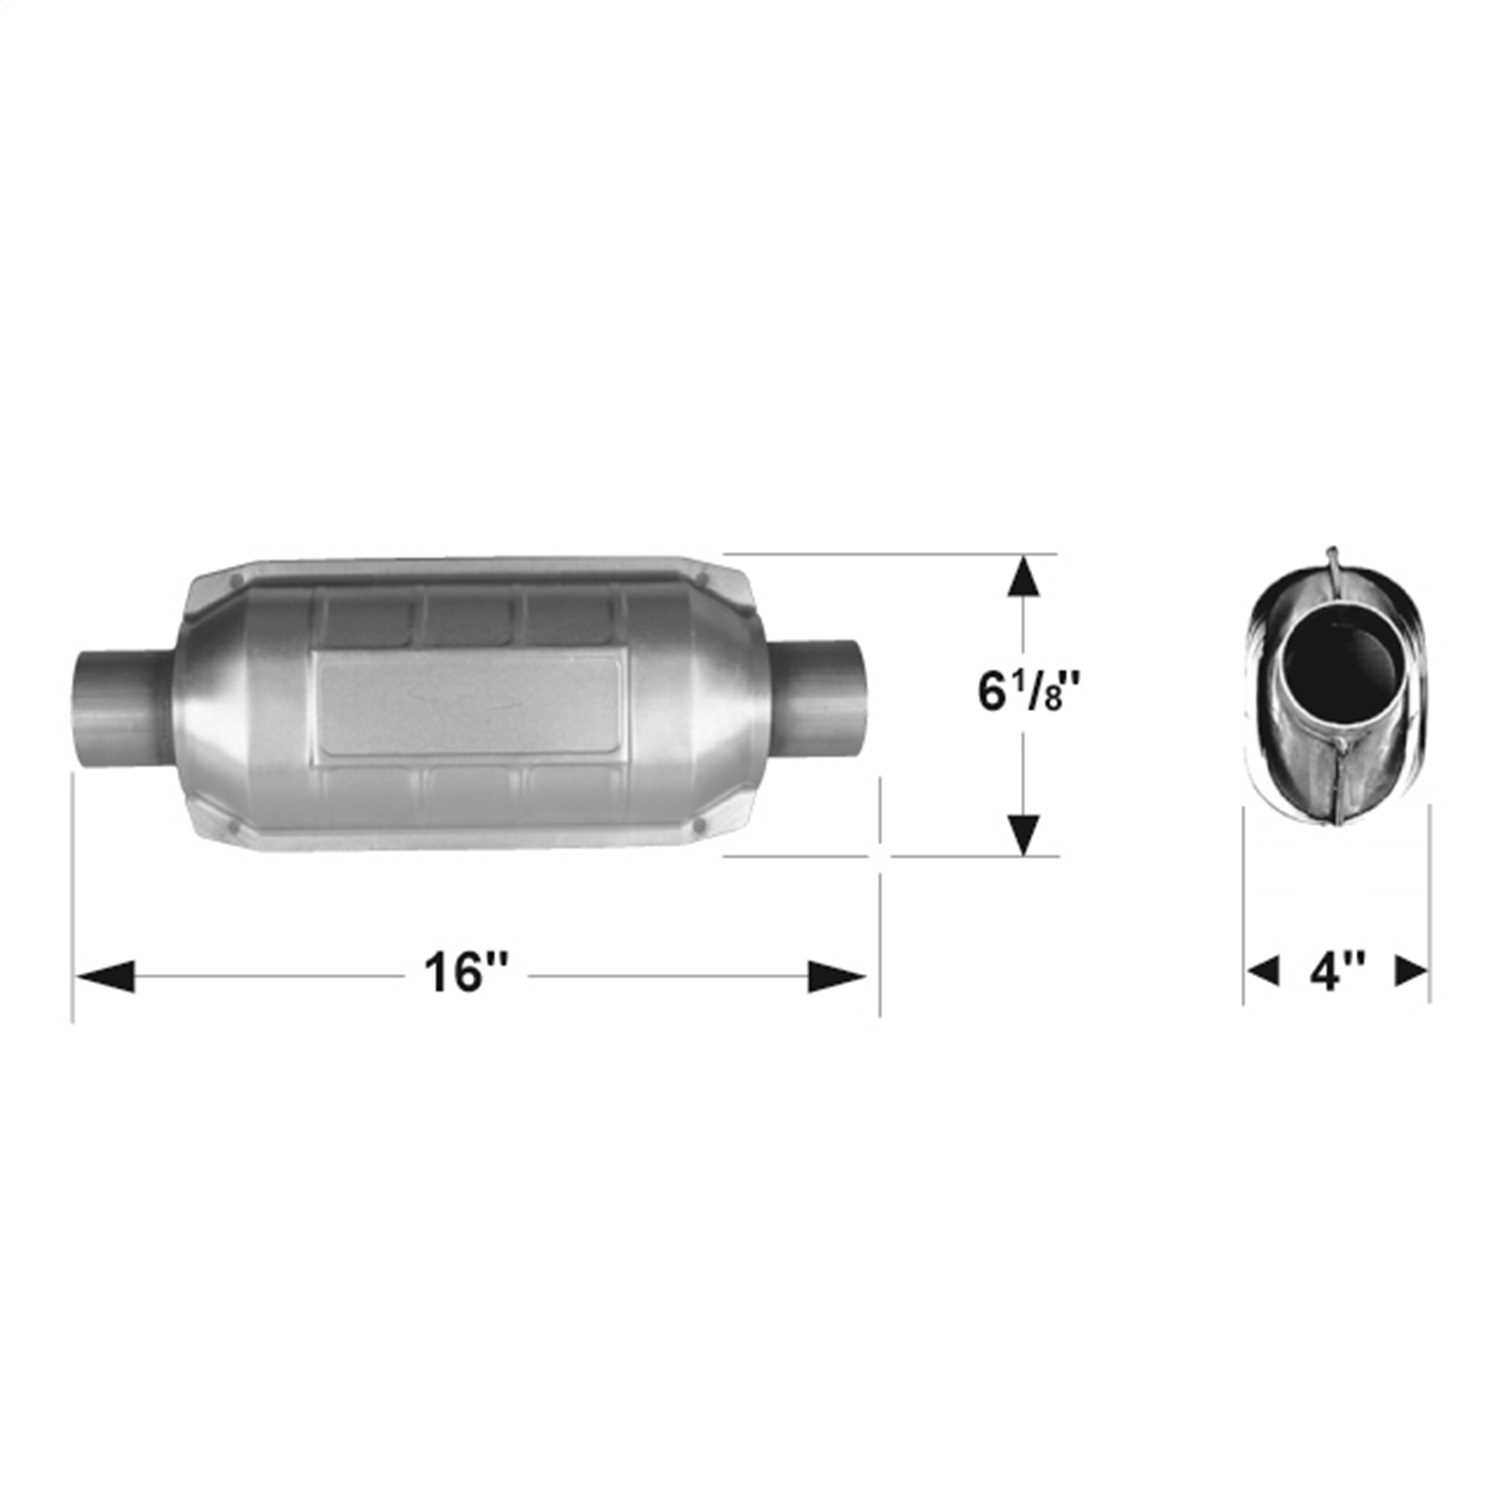 2250230 Flowmaster 49 State Catalytic Converters Universal Catalytic Converter